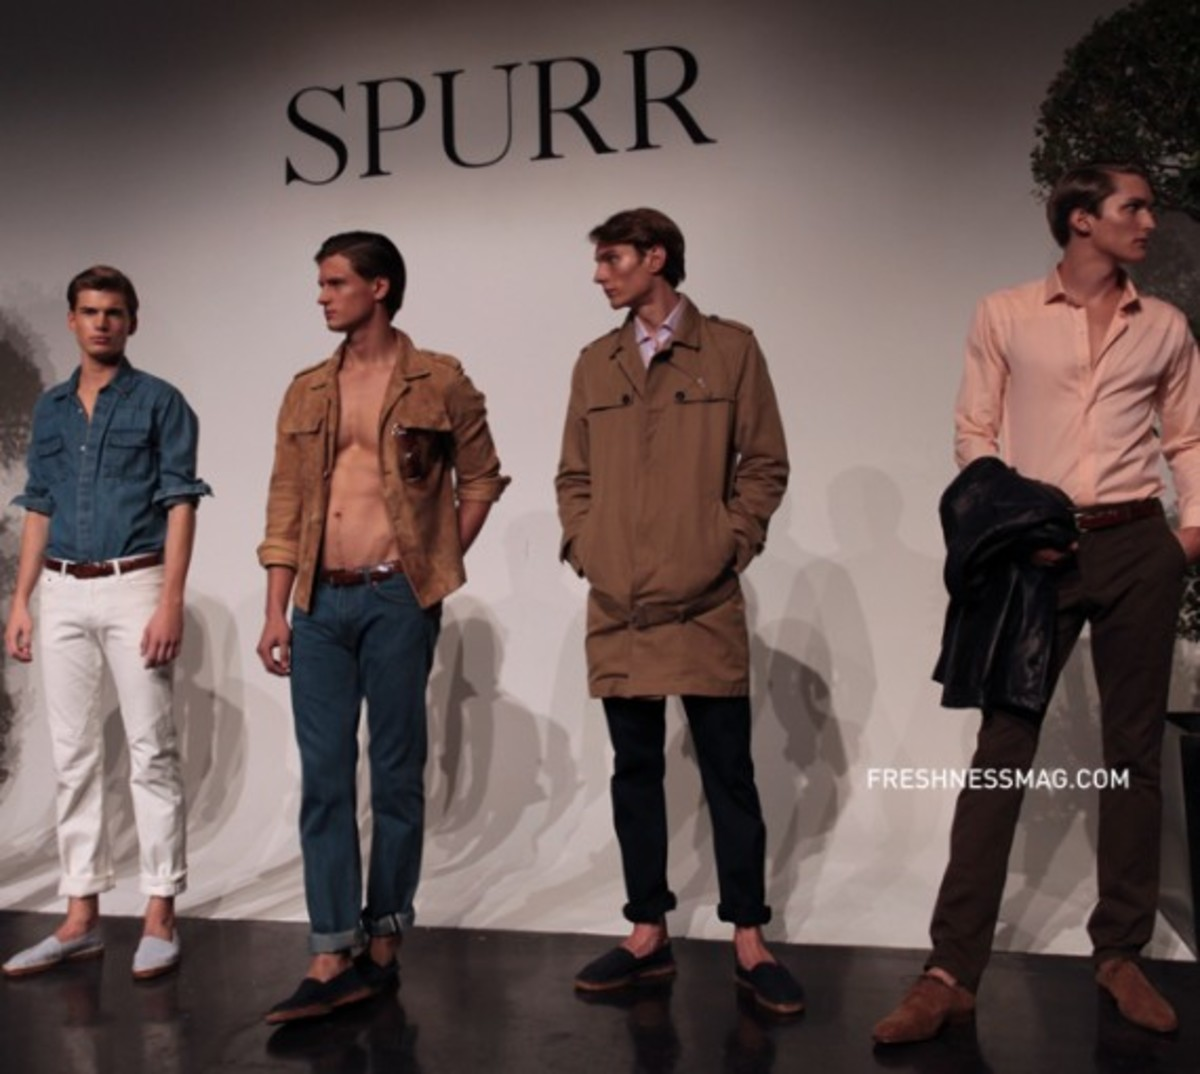 spurr-spring-summer-2010-collection-05